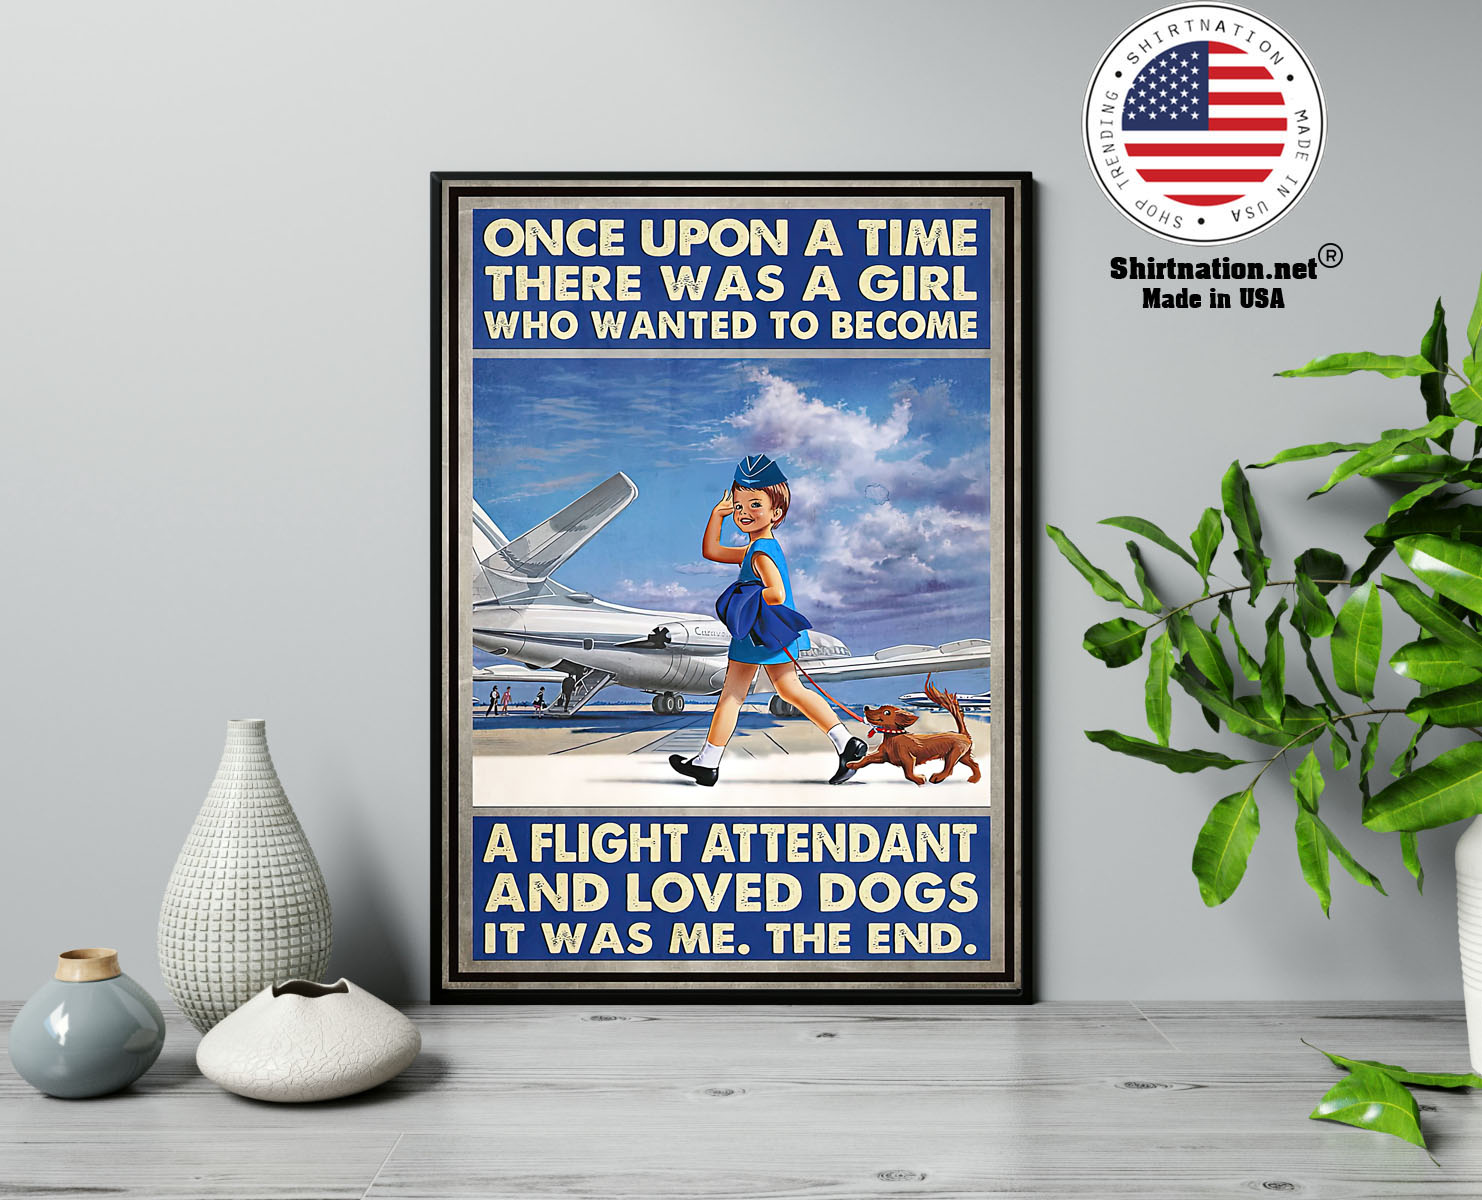 Once upon a time there was a girl who wanted to become a flight attendant and loved dogs poster 13